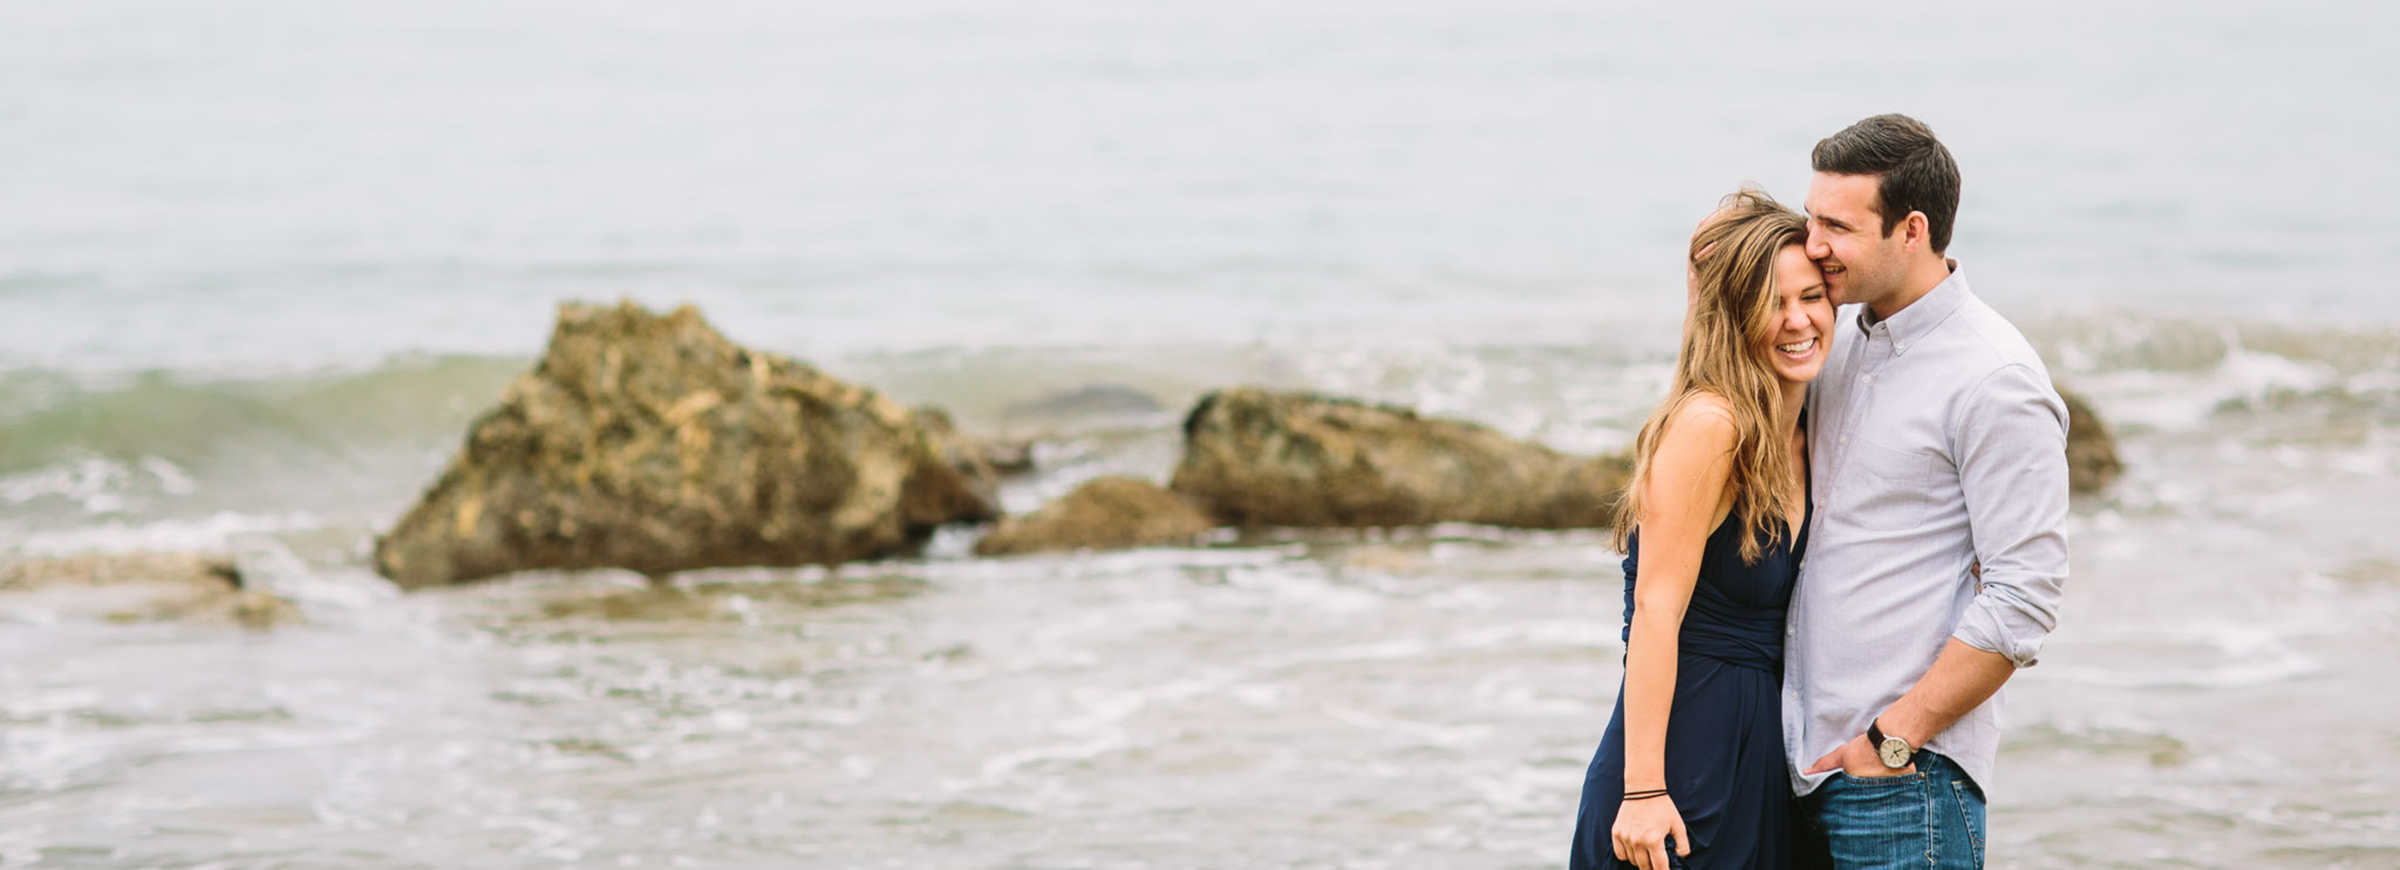 A ridiculous and awesome Long Beach Engagement session